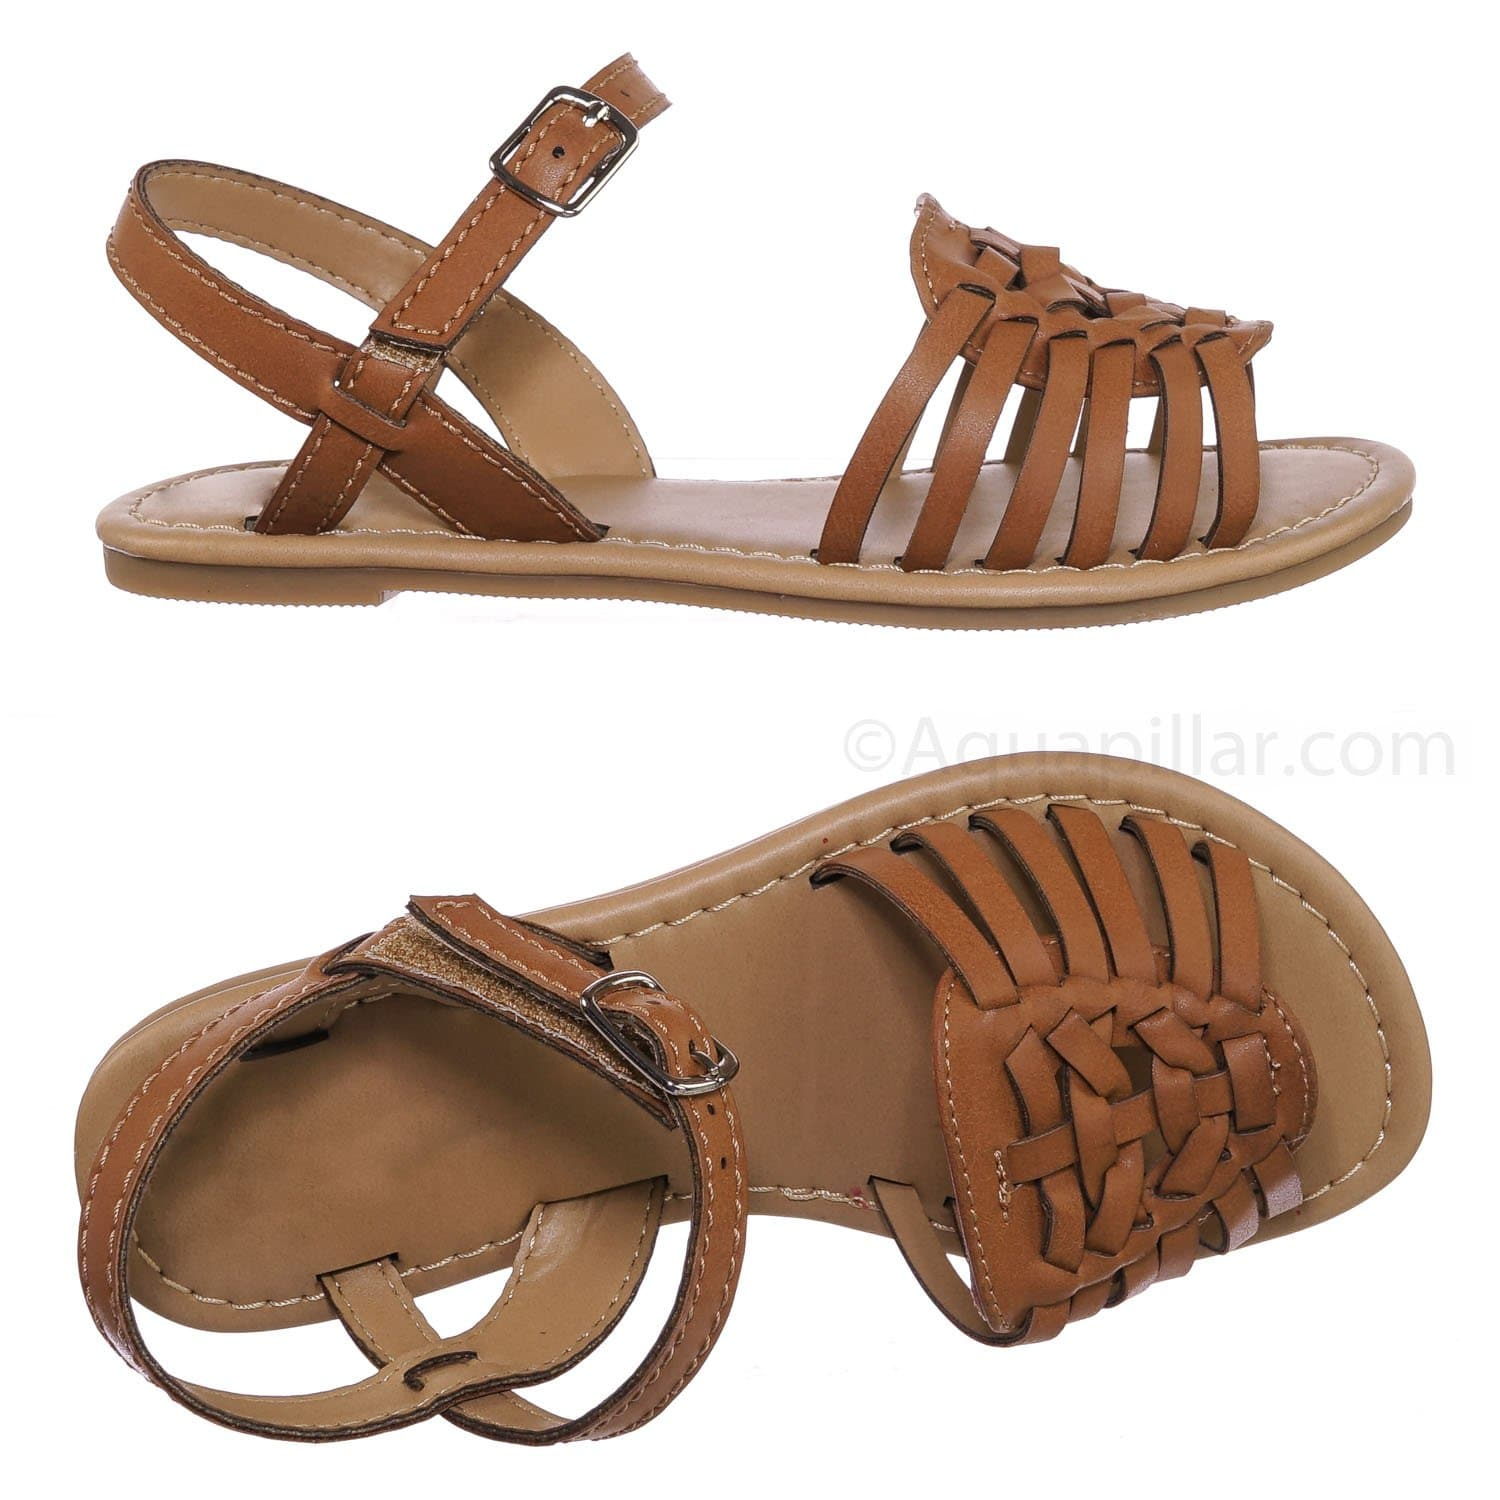 Milene2 Tan Brown Kids Woven Fisherman Huarache Flat sandal - Girl Children Open Toe Shoes